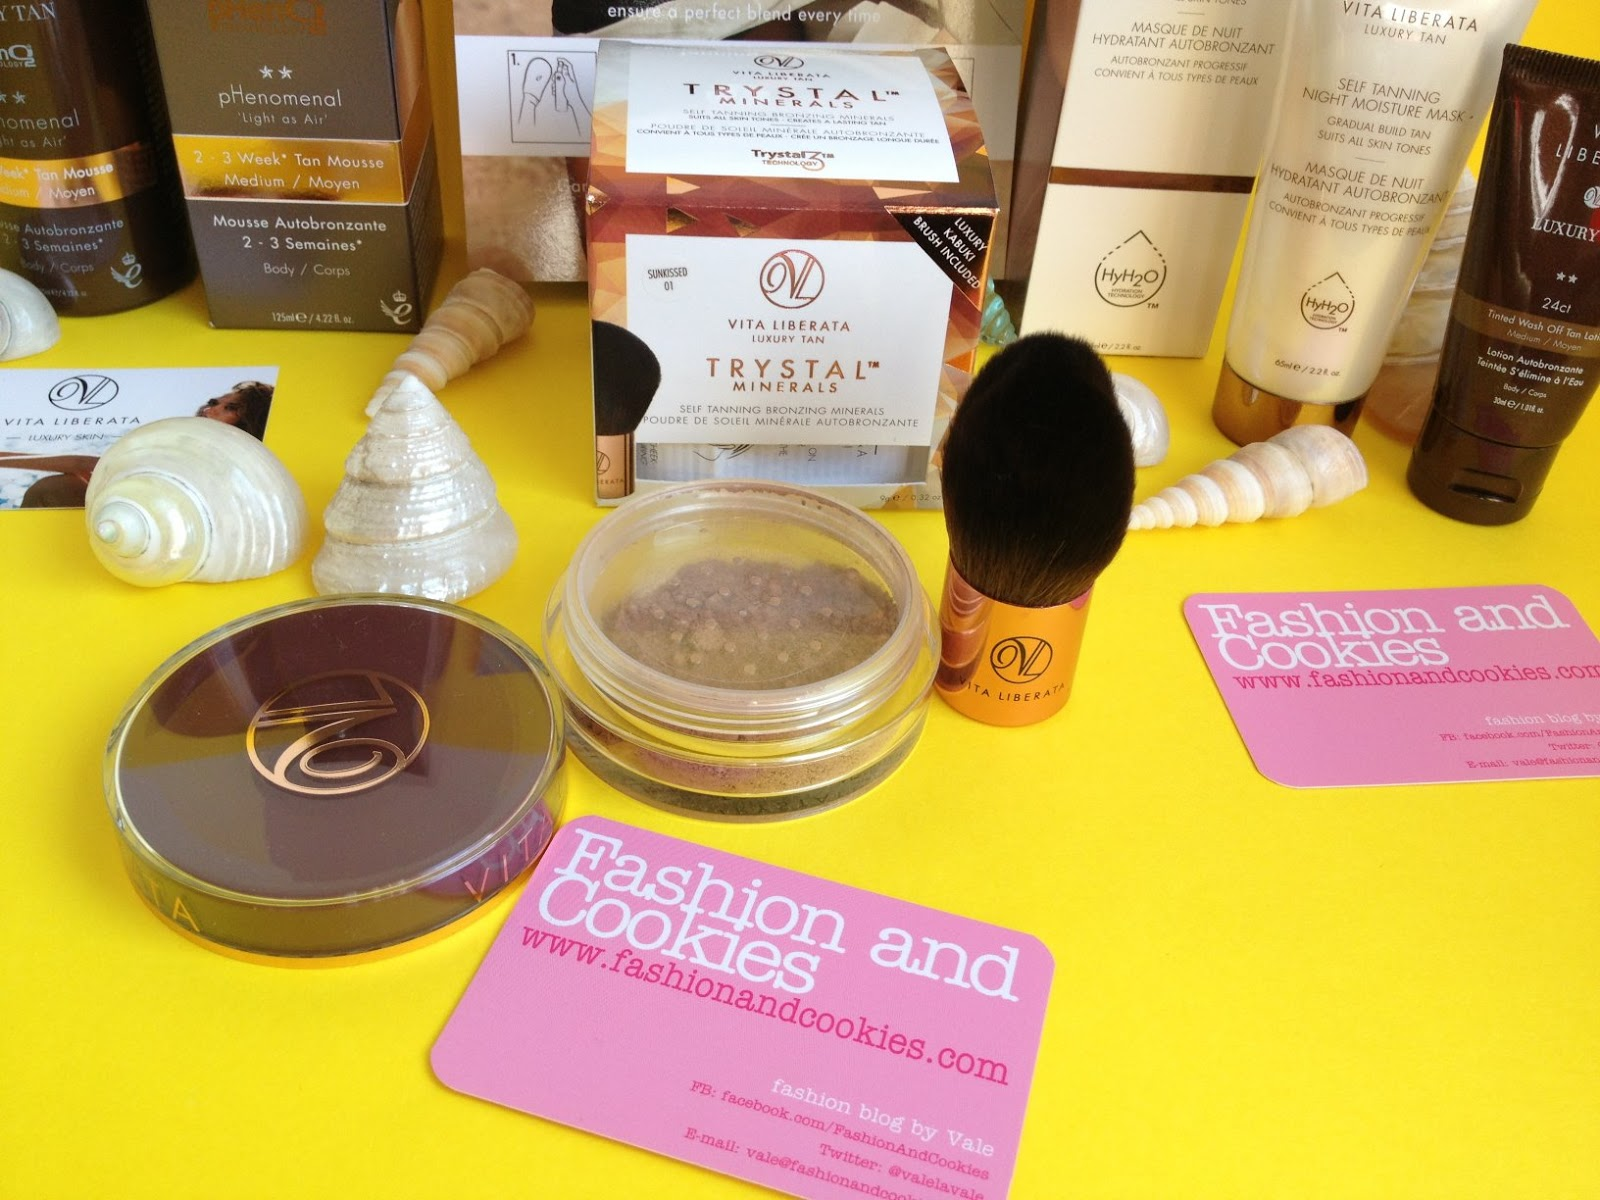 Trystal Minerals Luxury Tan Vita Liberata: how to get a tan quickly and safely on Fashion and Cookies fashion blog